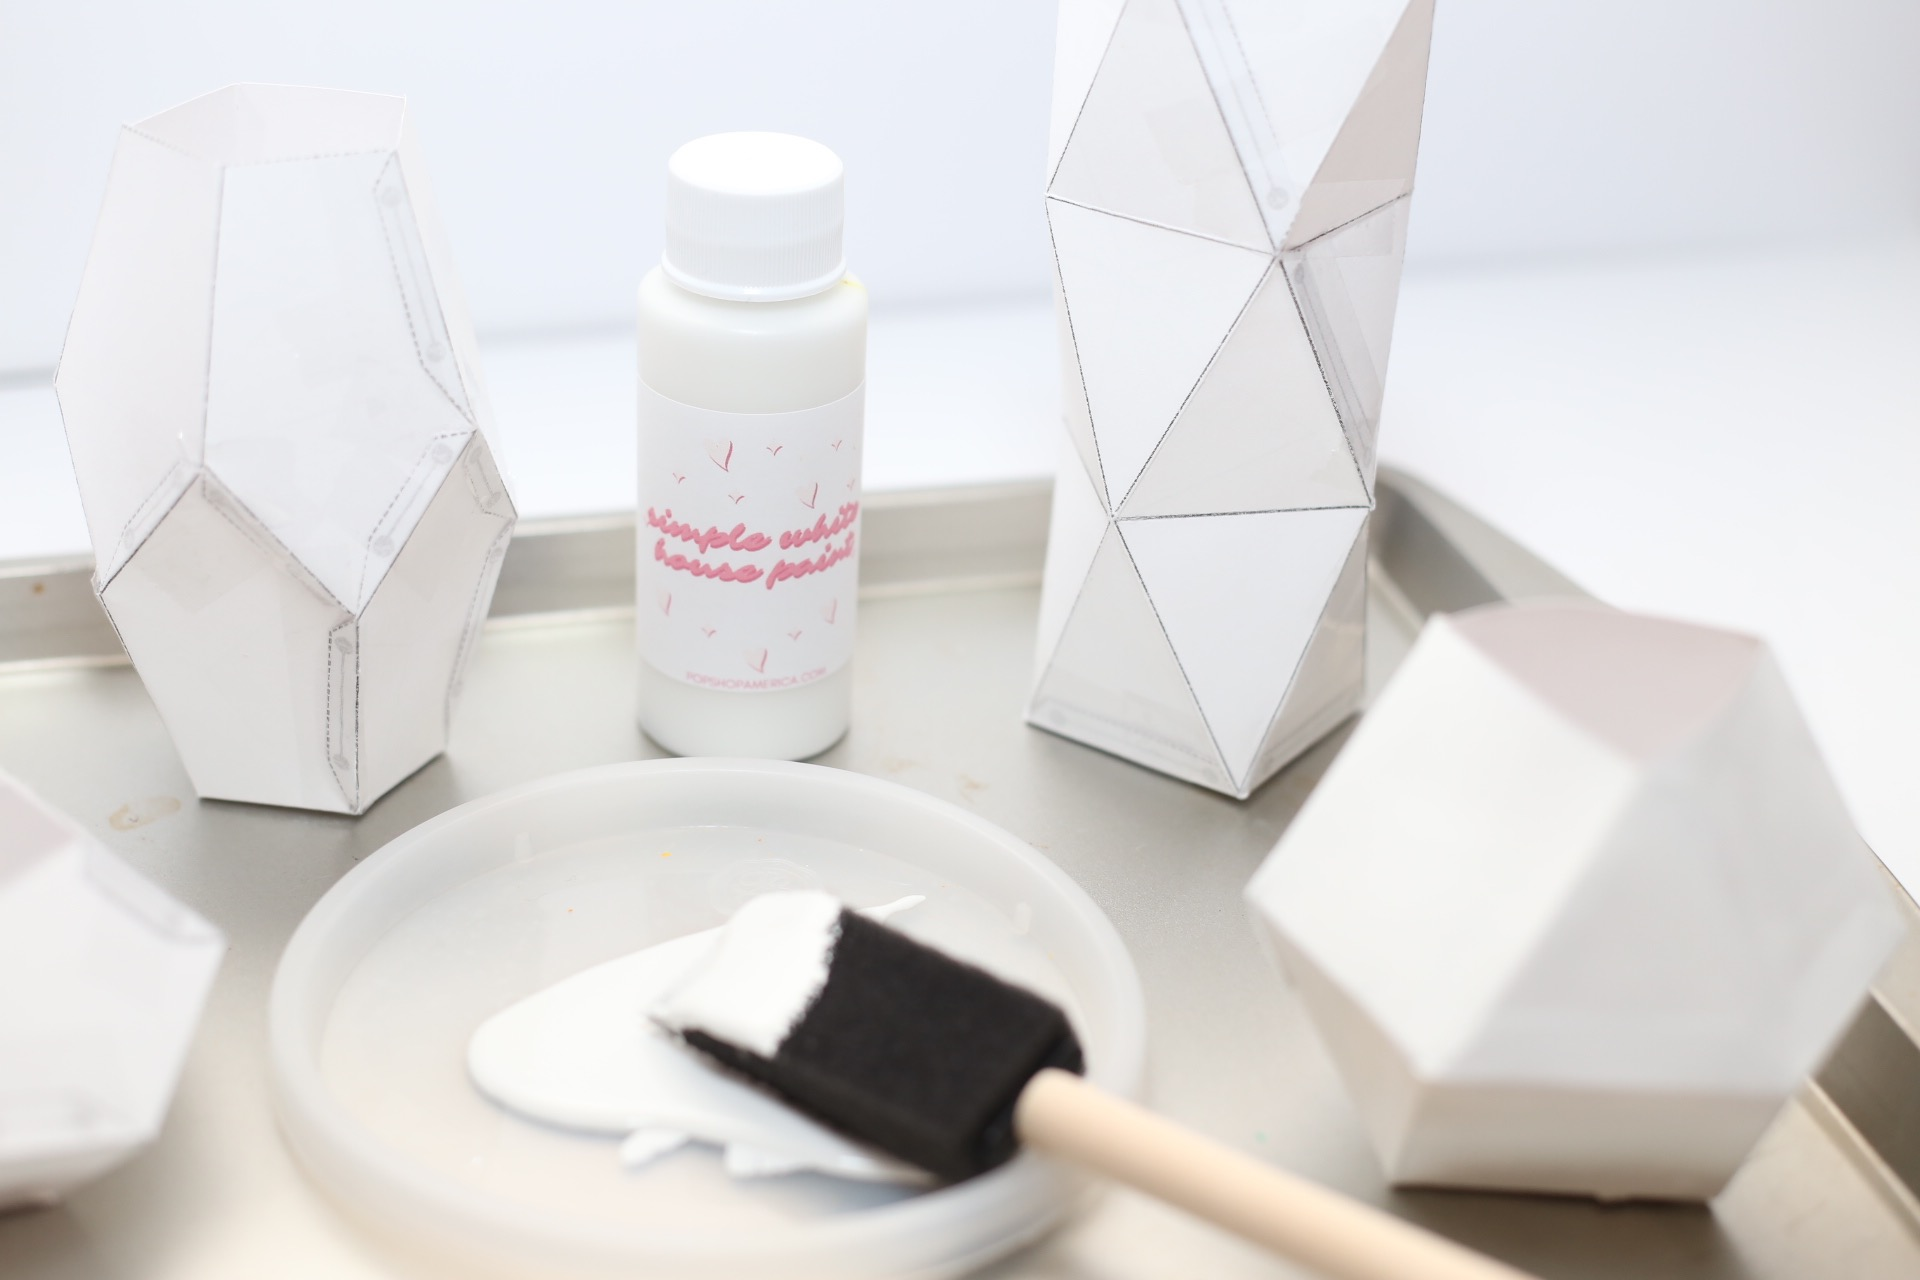 paint the geometric candles with house paint